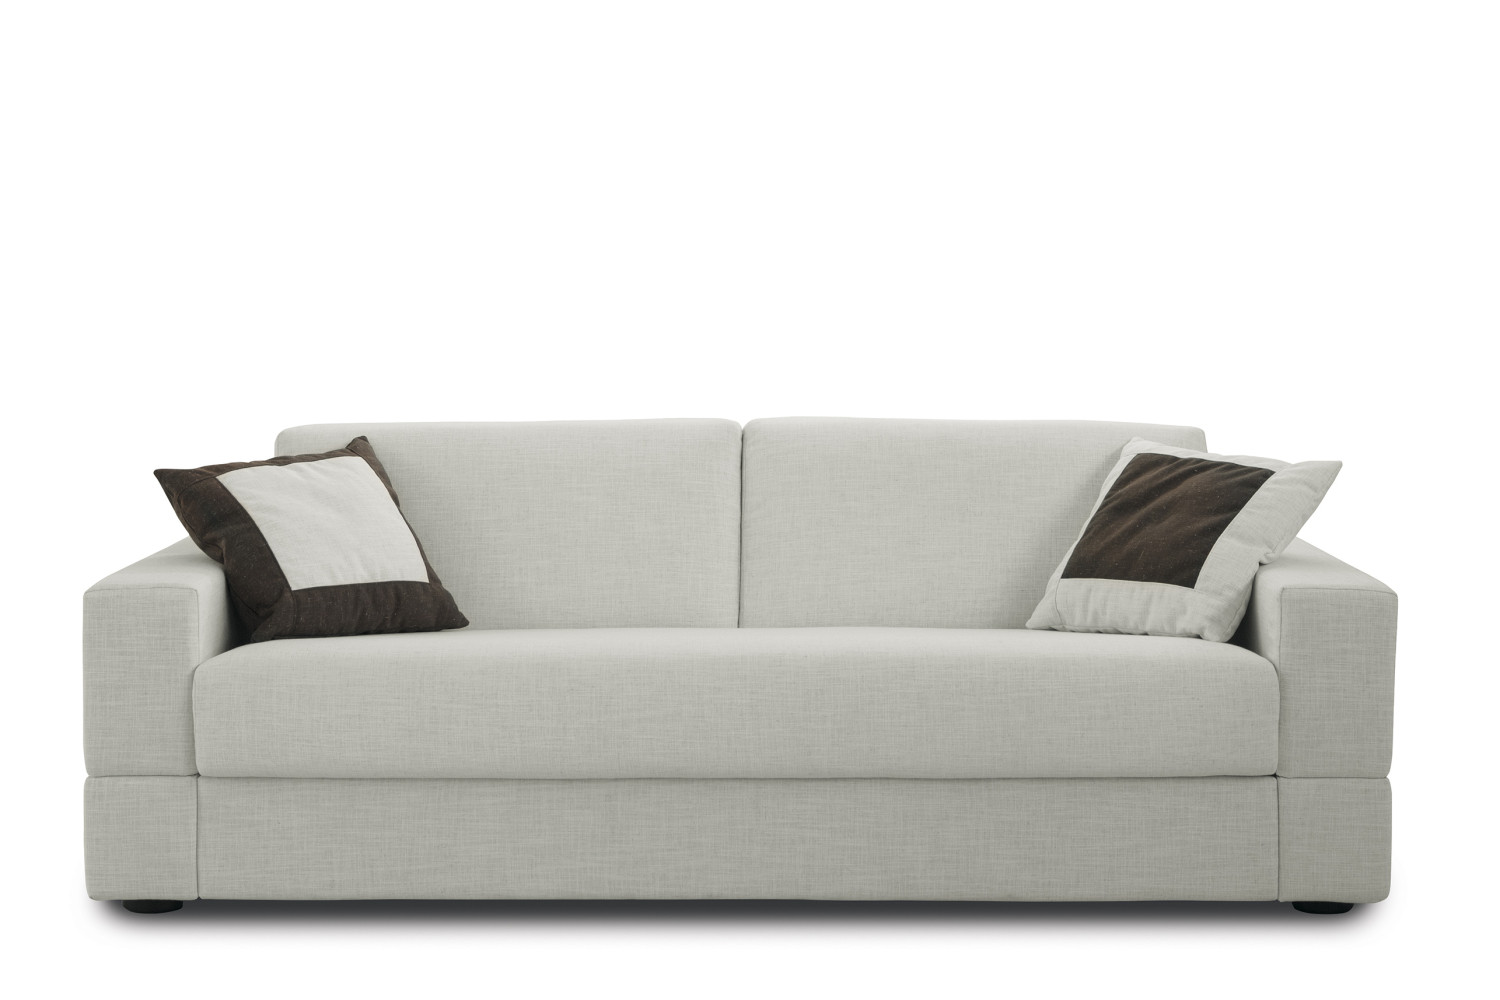 brian is a 2 or 3-seater sofa bed with sprung mattress, compact, ROU9A5NN